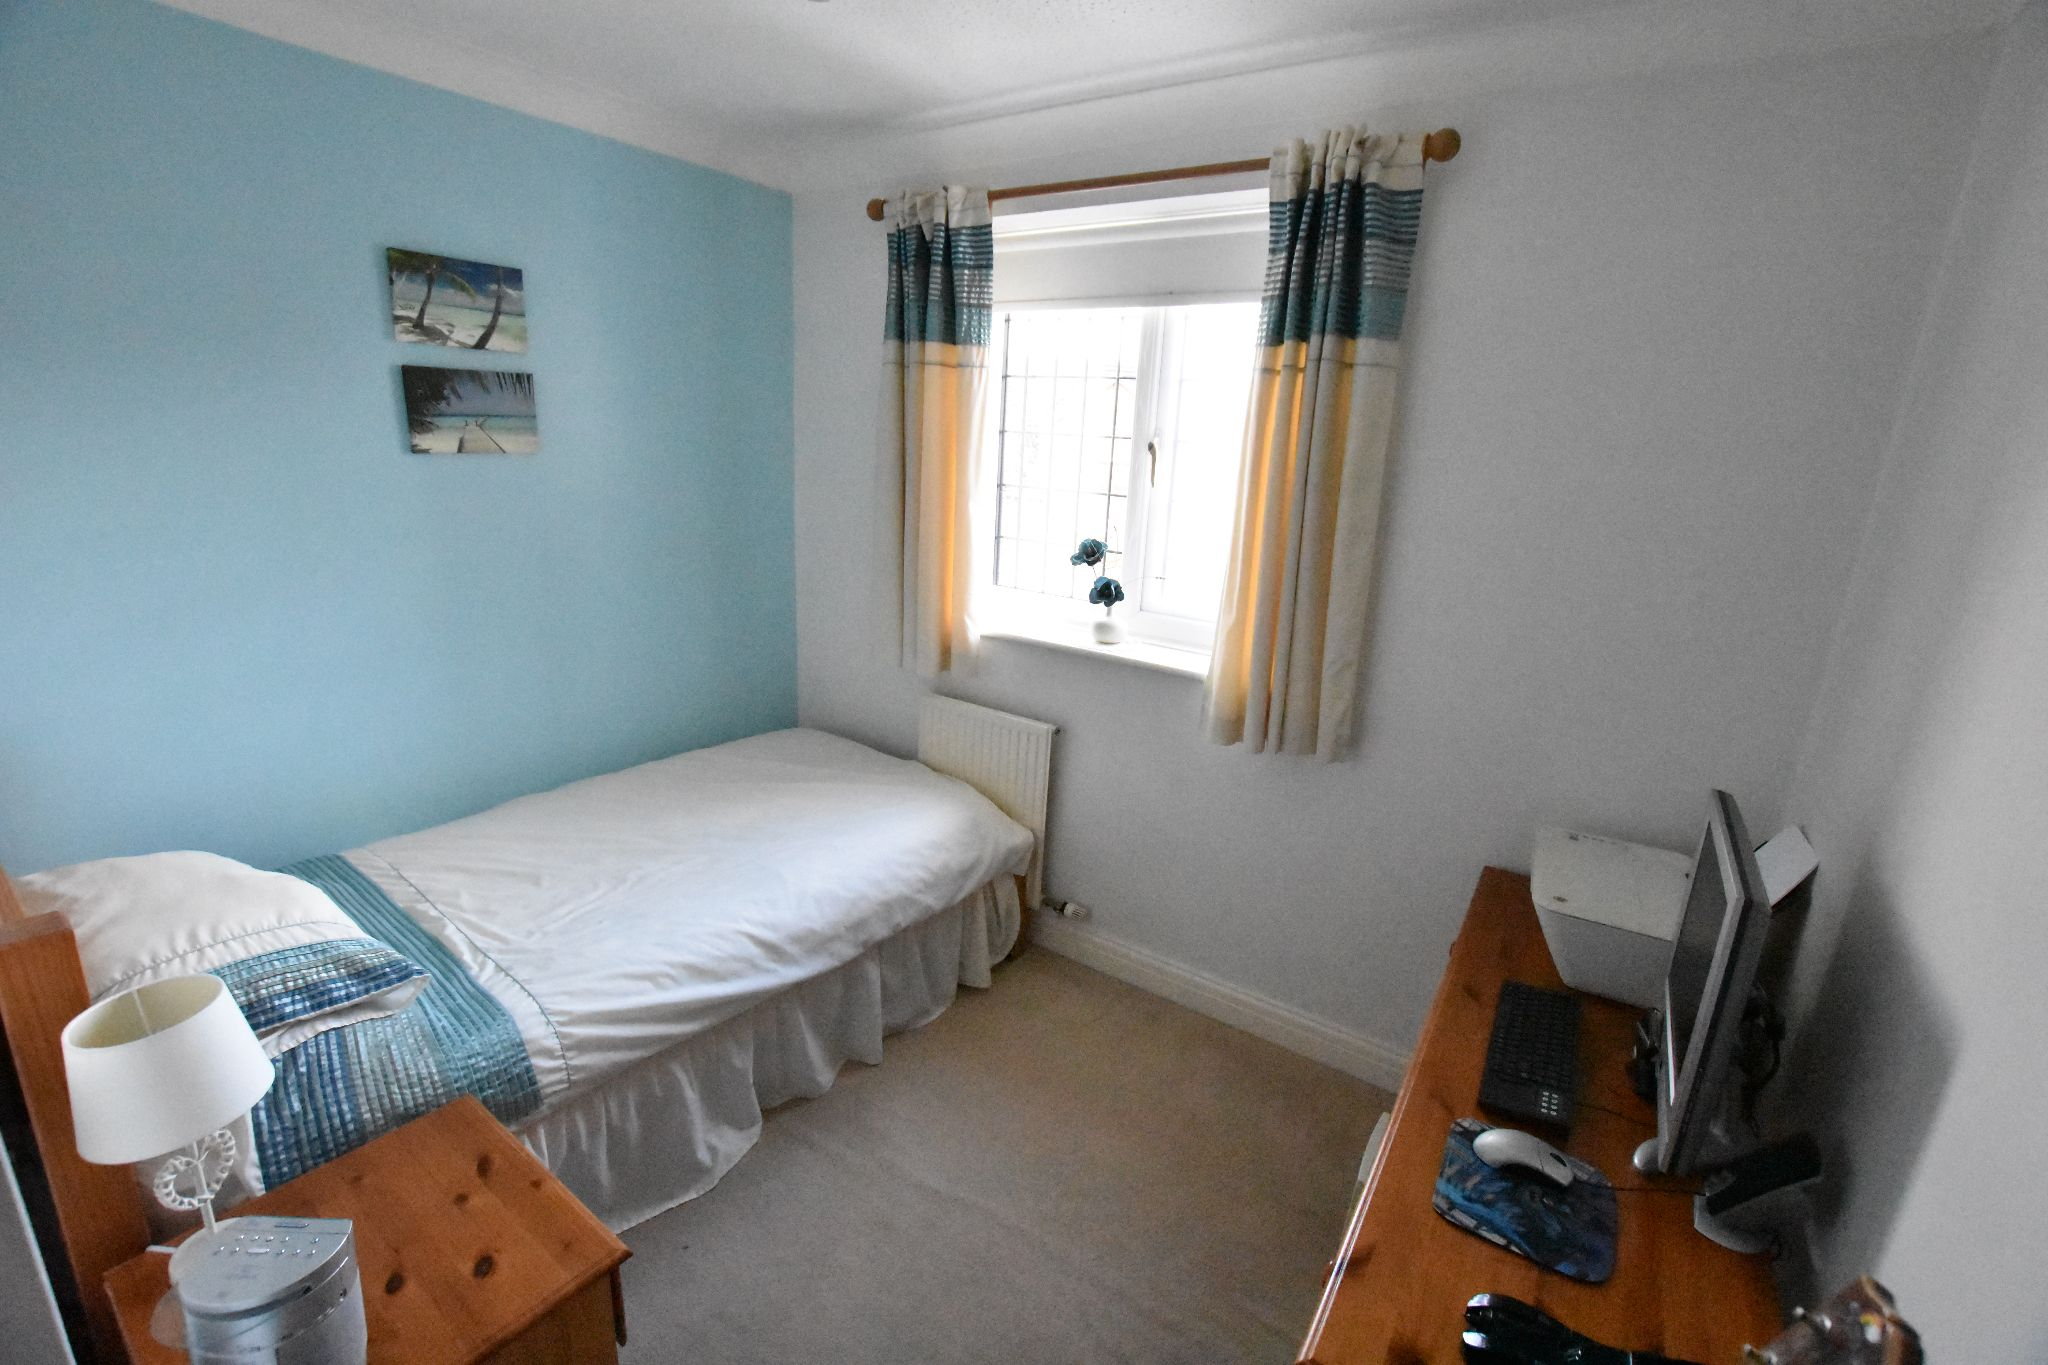 4 bedroom detached house Sold STC in Lytham St. Annes - Bedroom 4